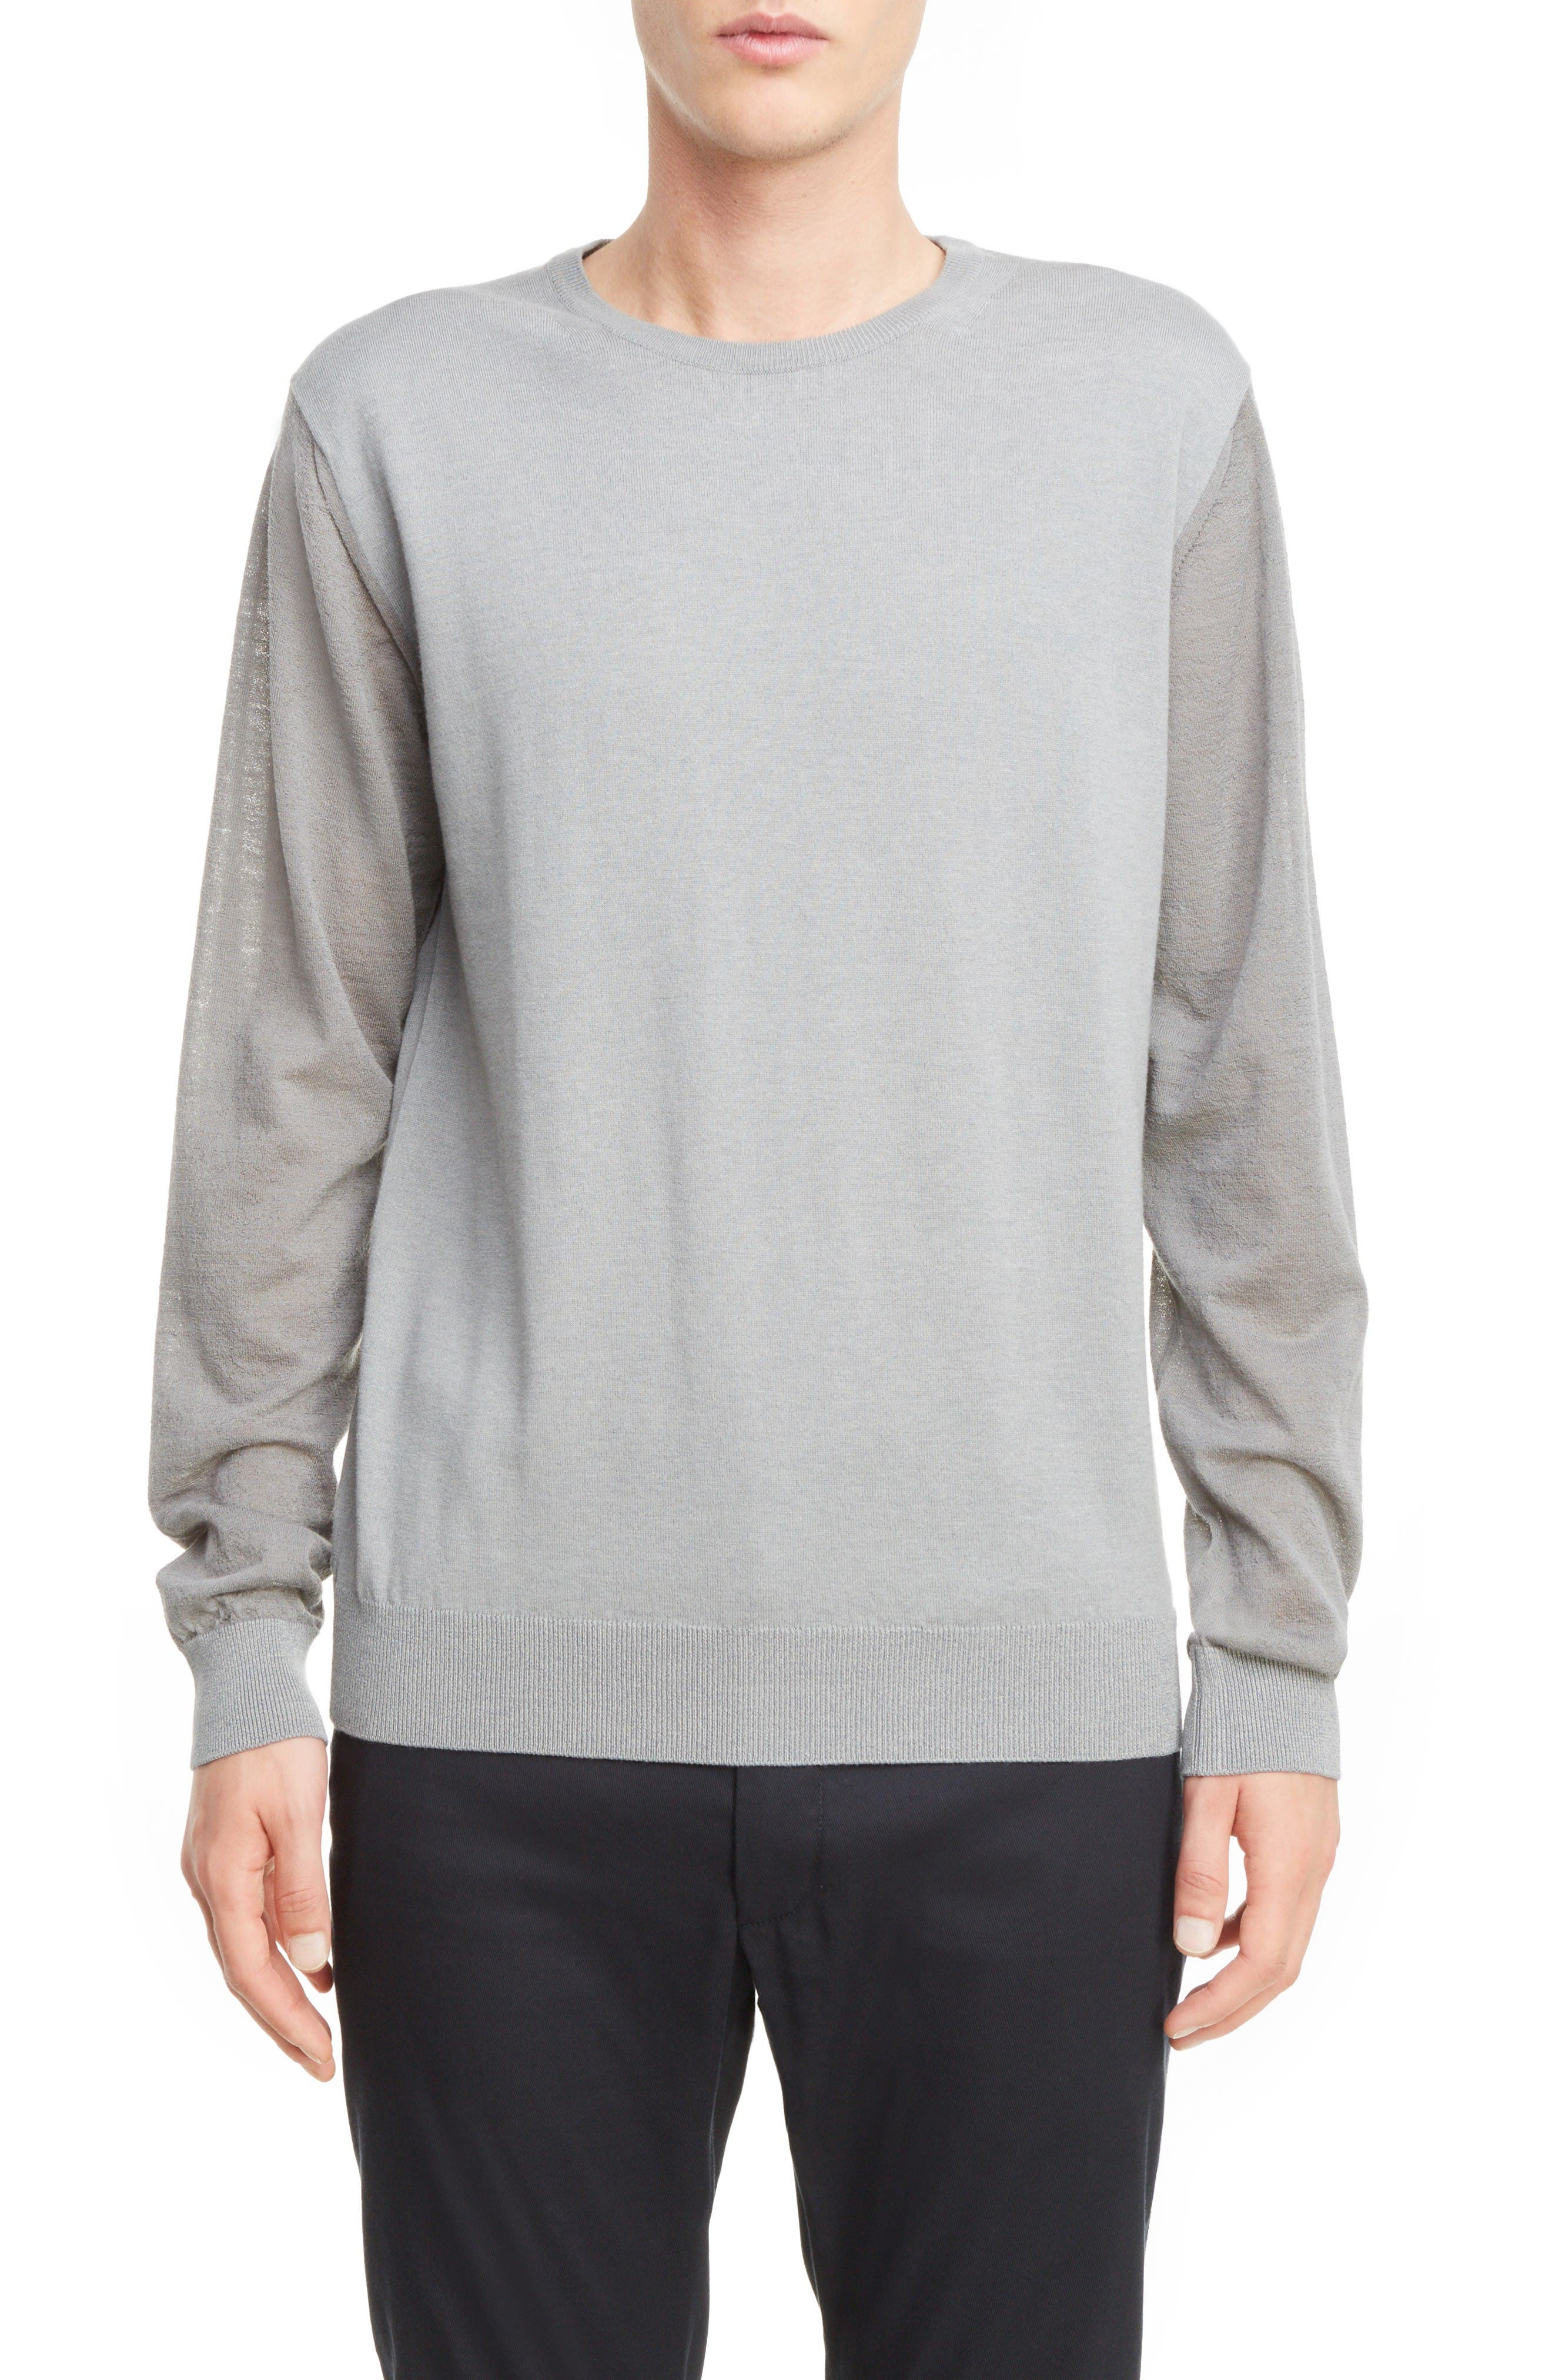 LANVIN Cotton & Wool Colorblock Pullover